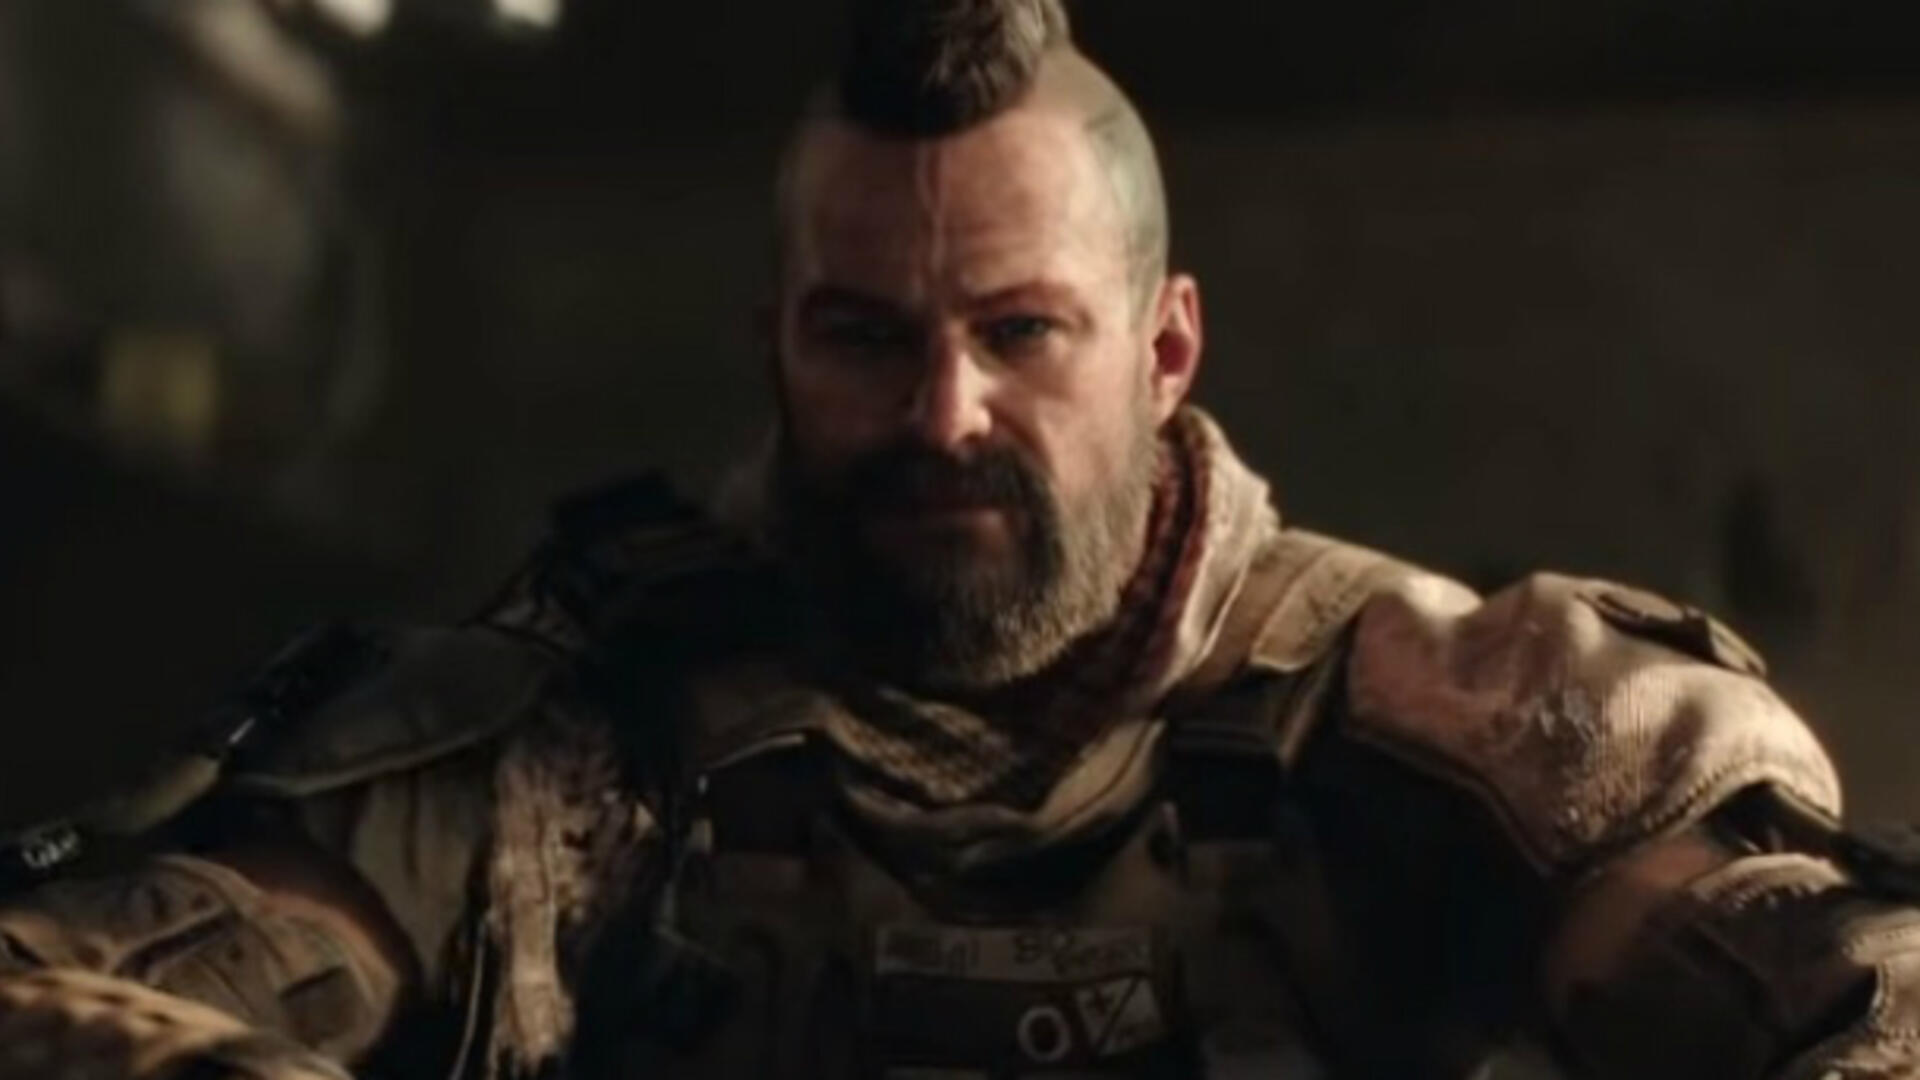 Infinity Ward Job Posting Suggests Call of Duty 2019 Will Have a Single-Player Campaign